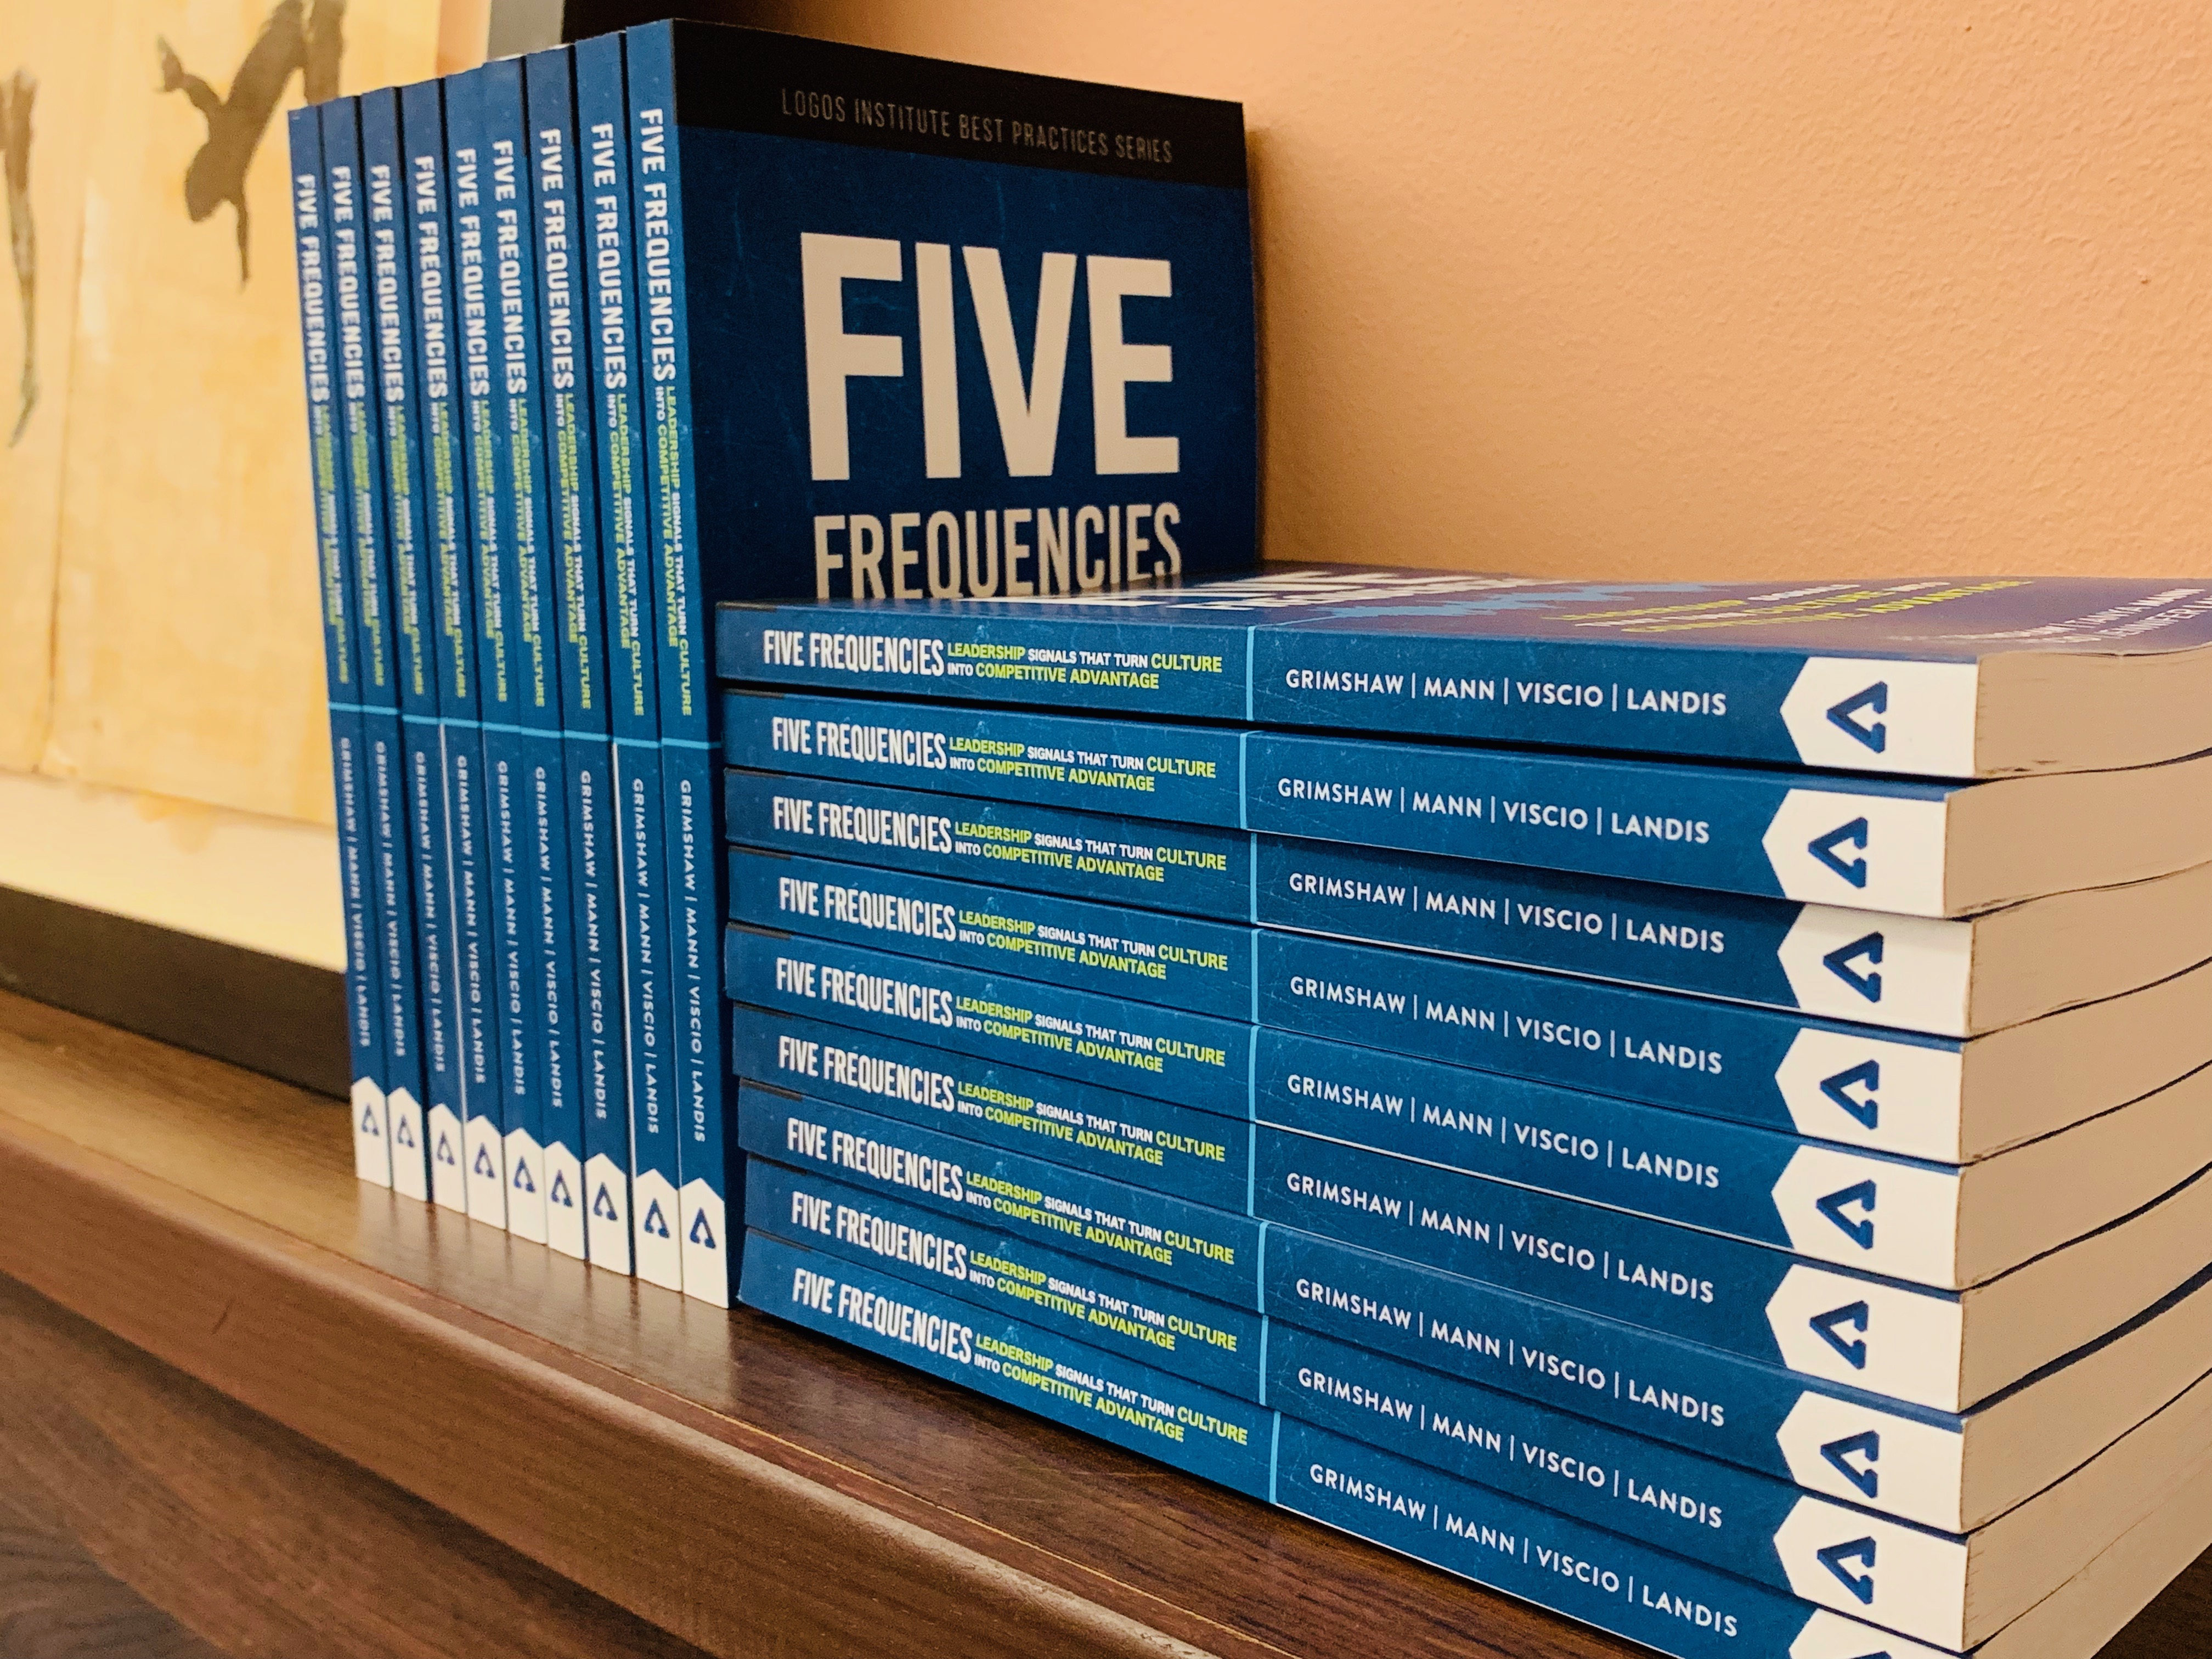 Logos Institute Press celebrates the launch of its latest book, Five Frequencies